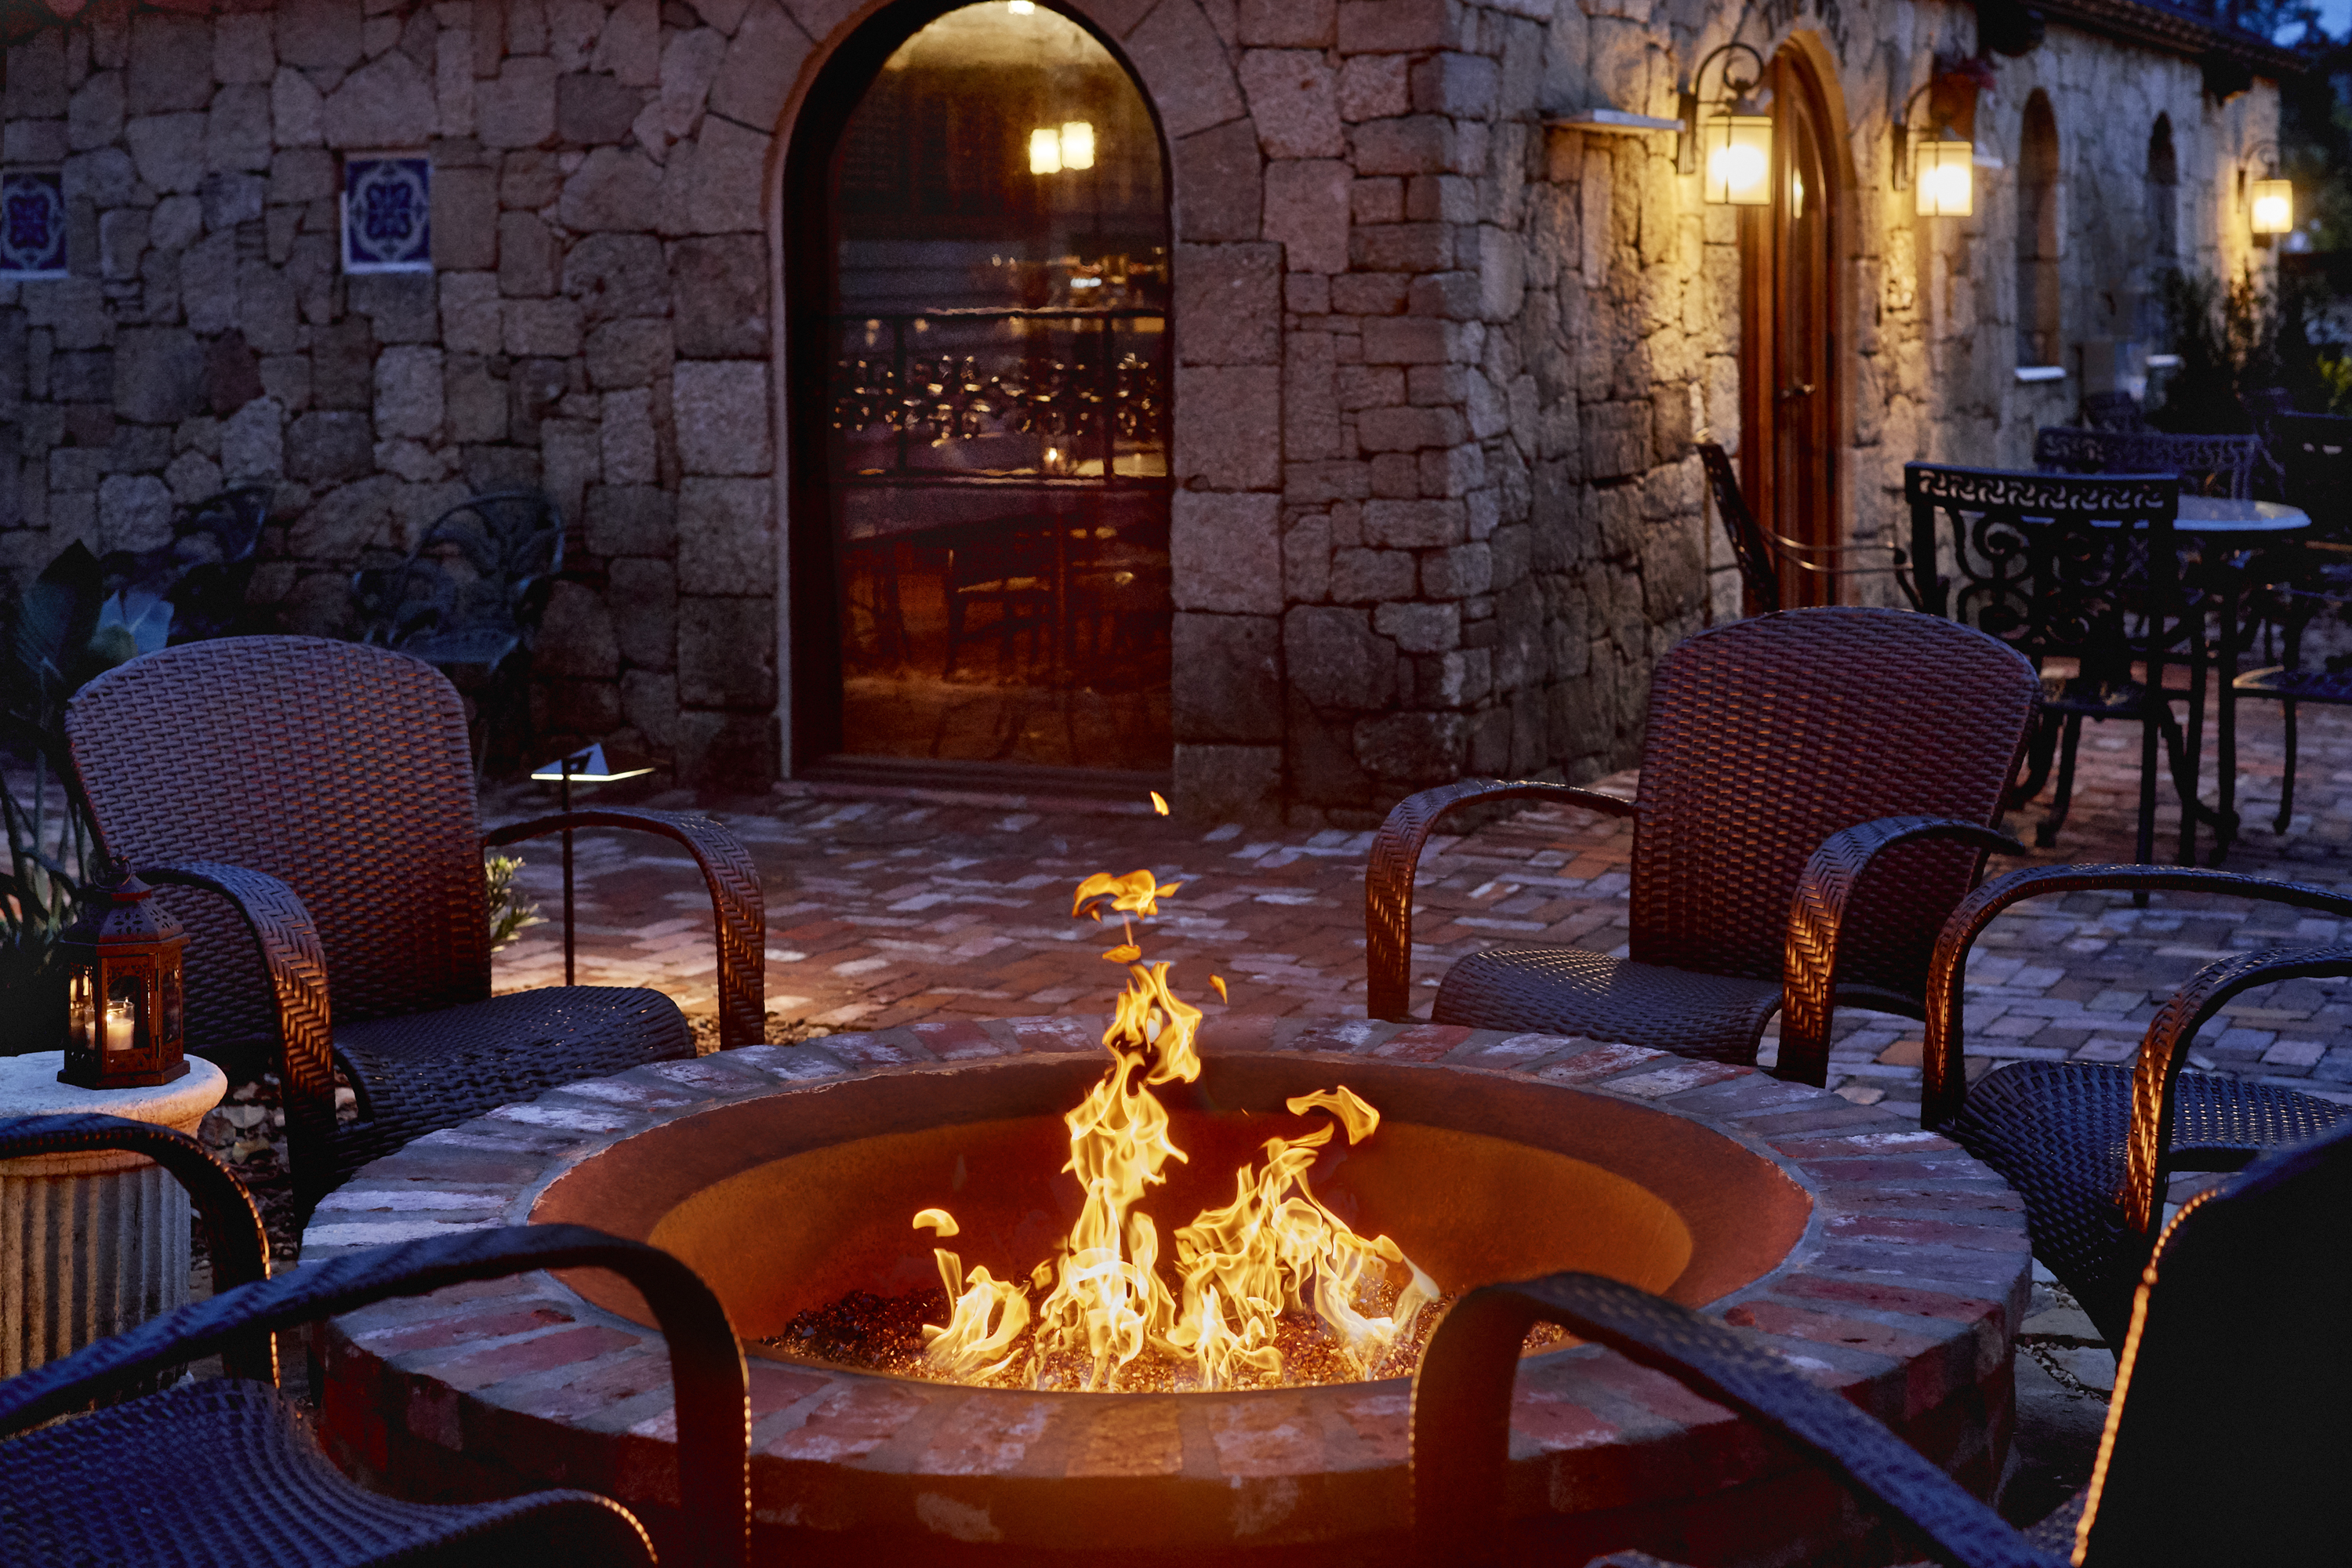 Relax by the cozy fire pit and forget about the stresses of everyday life.